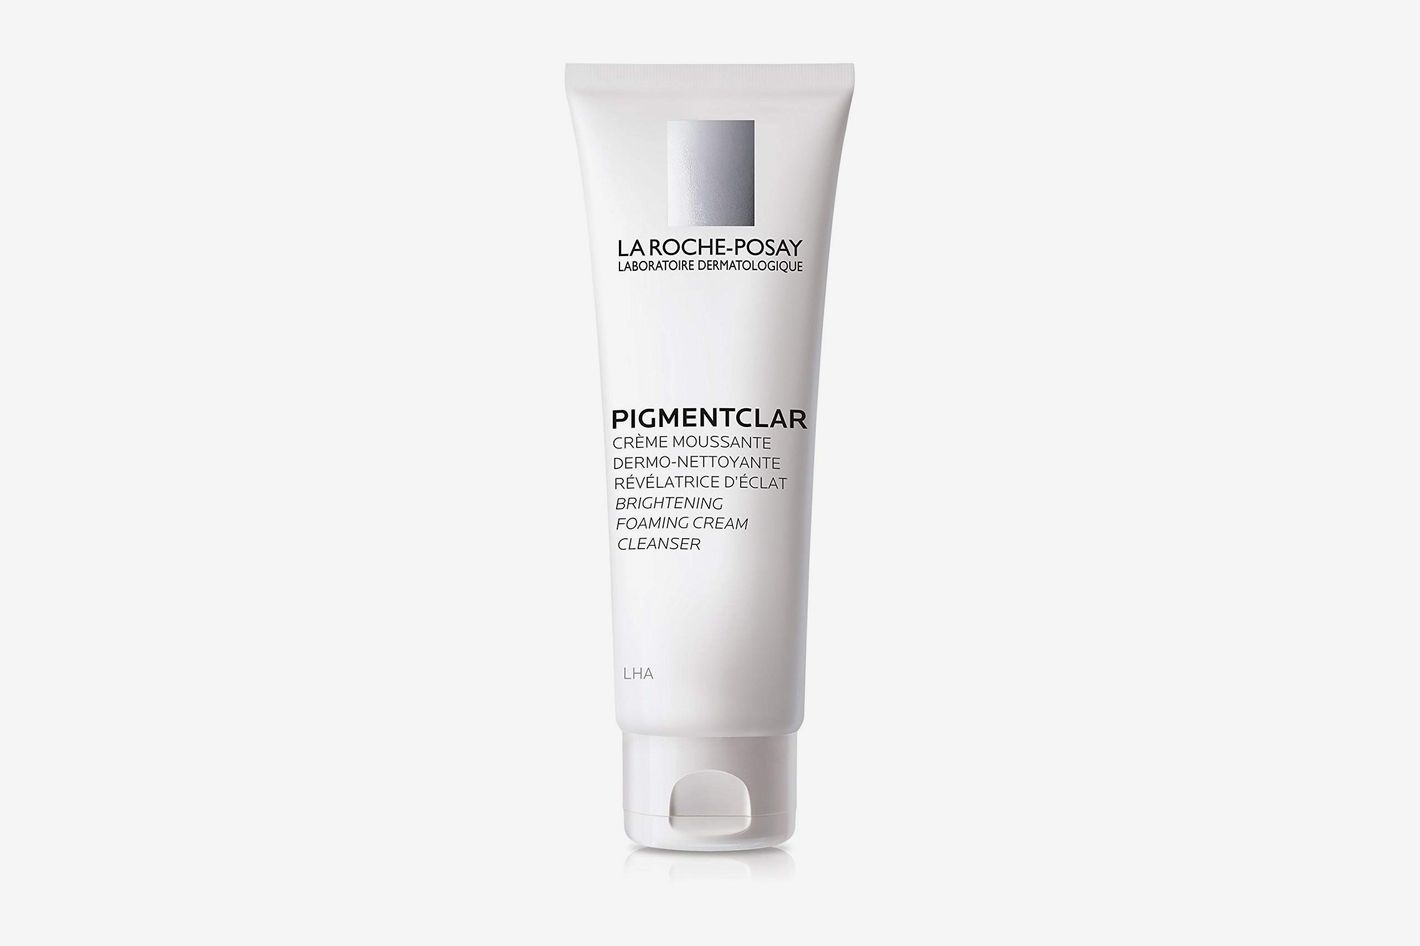 La Roche-Posay Pigmentclar Dark Spot Face Wash Brightening Foaming Cream Facial Cleanser with LHA